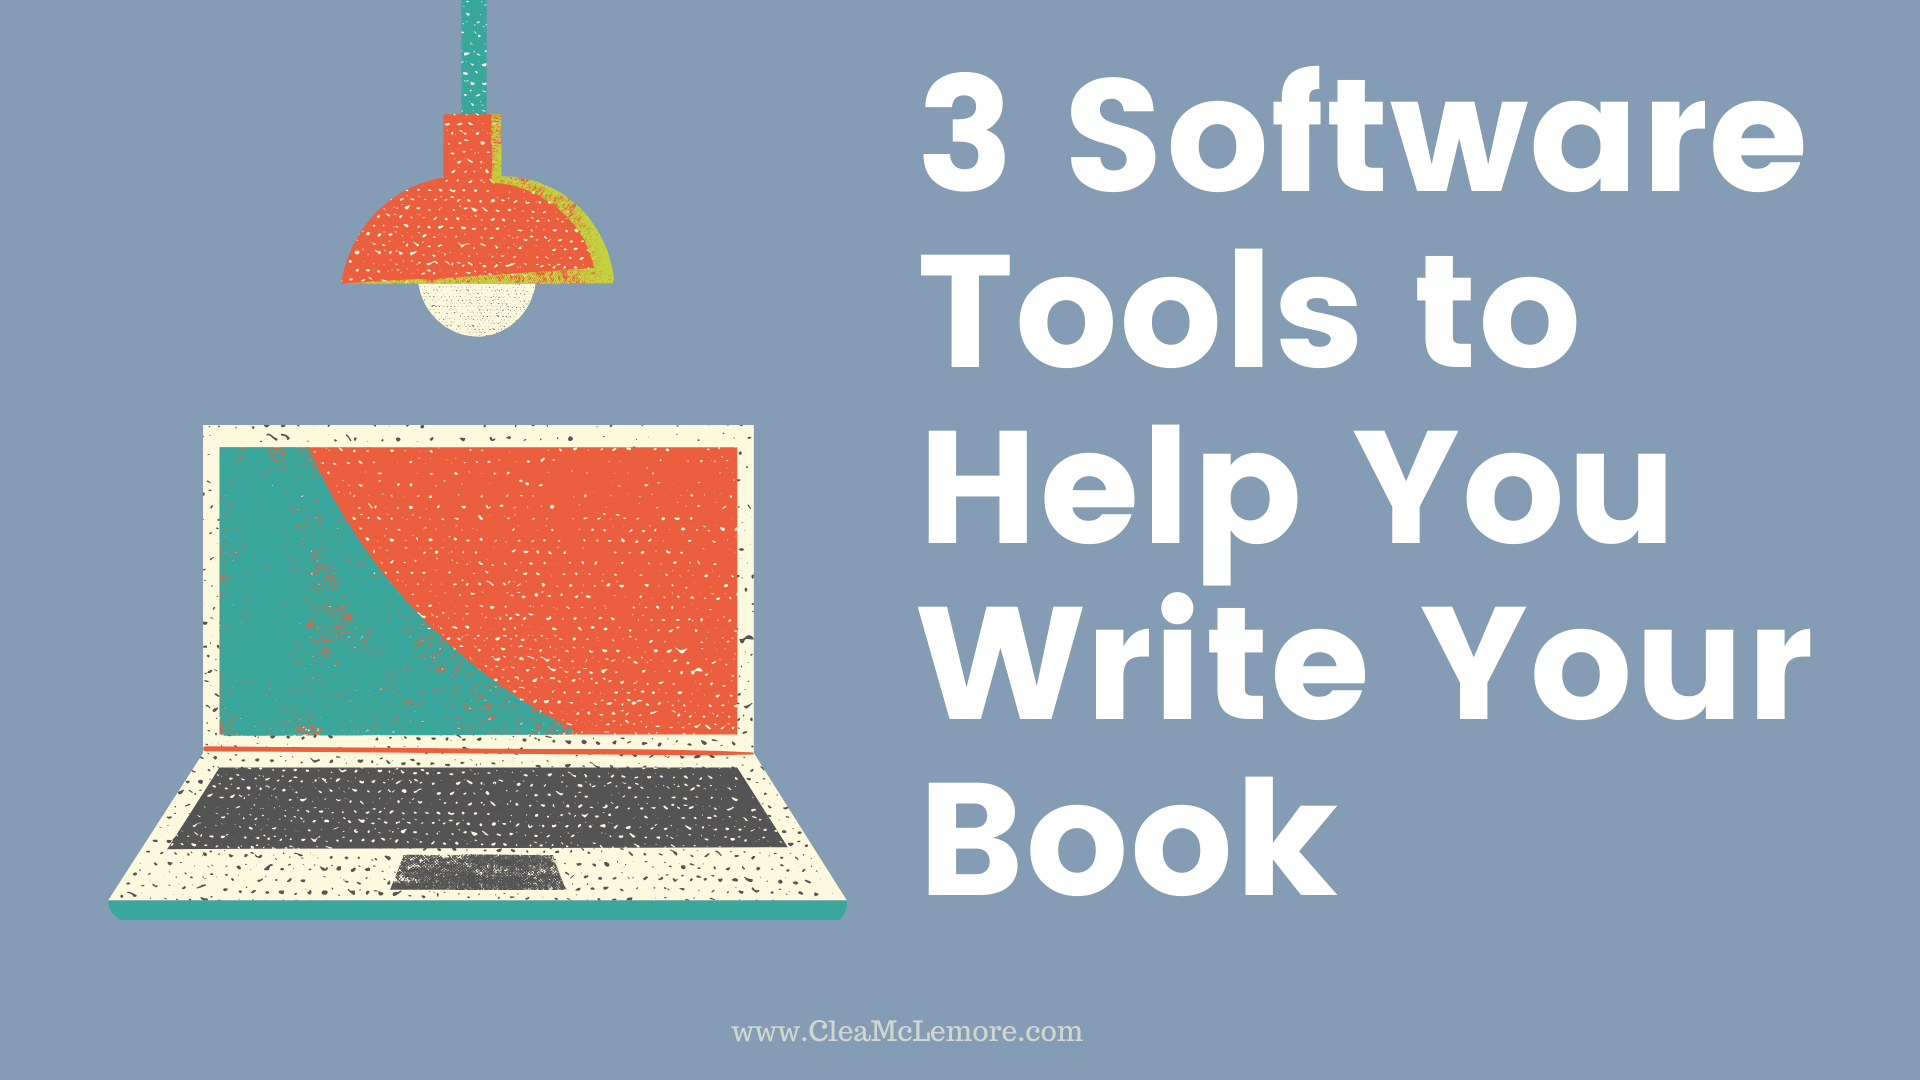 3 Software Tools to Help You Write Your Book